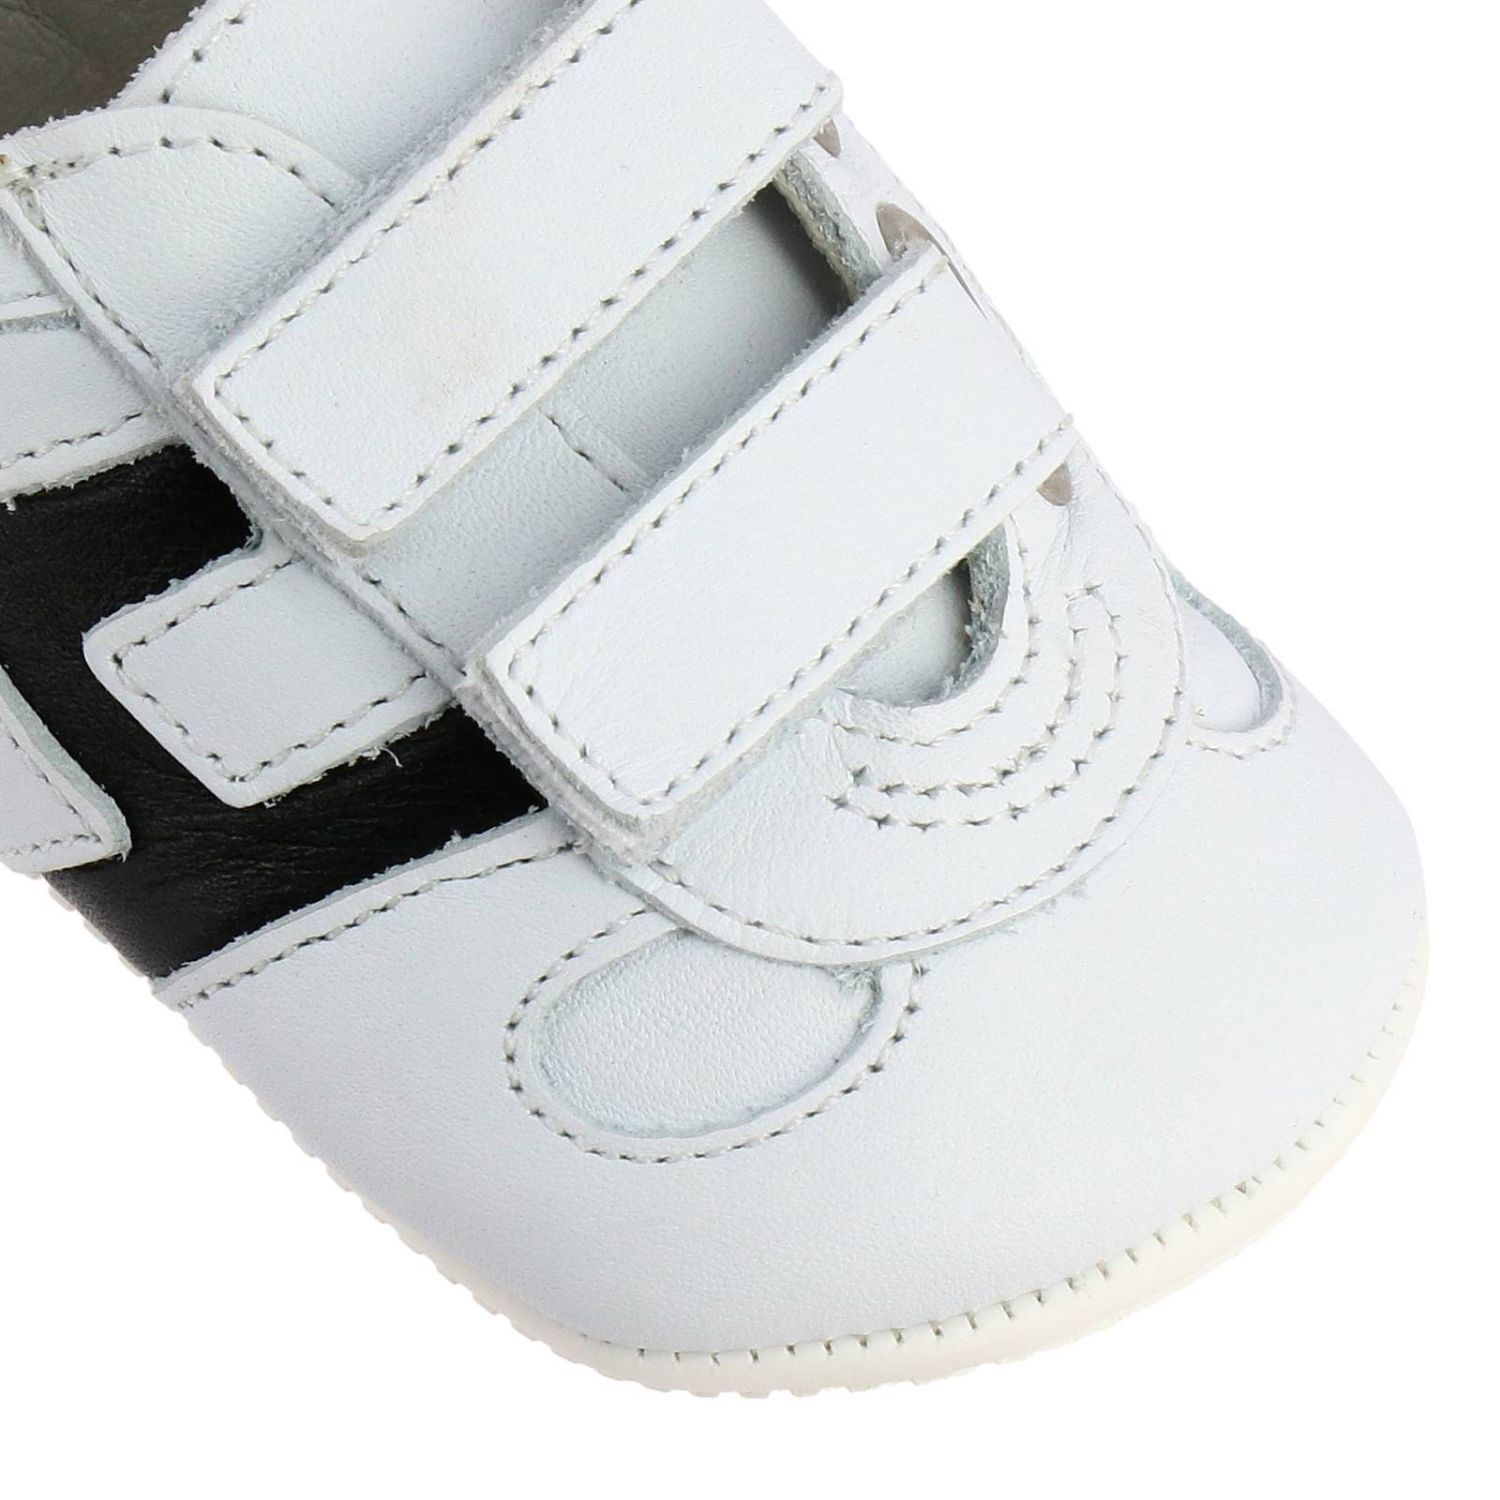 Olympia Hogan sneakers in leather with Velcro straps white 3